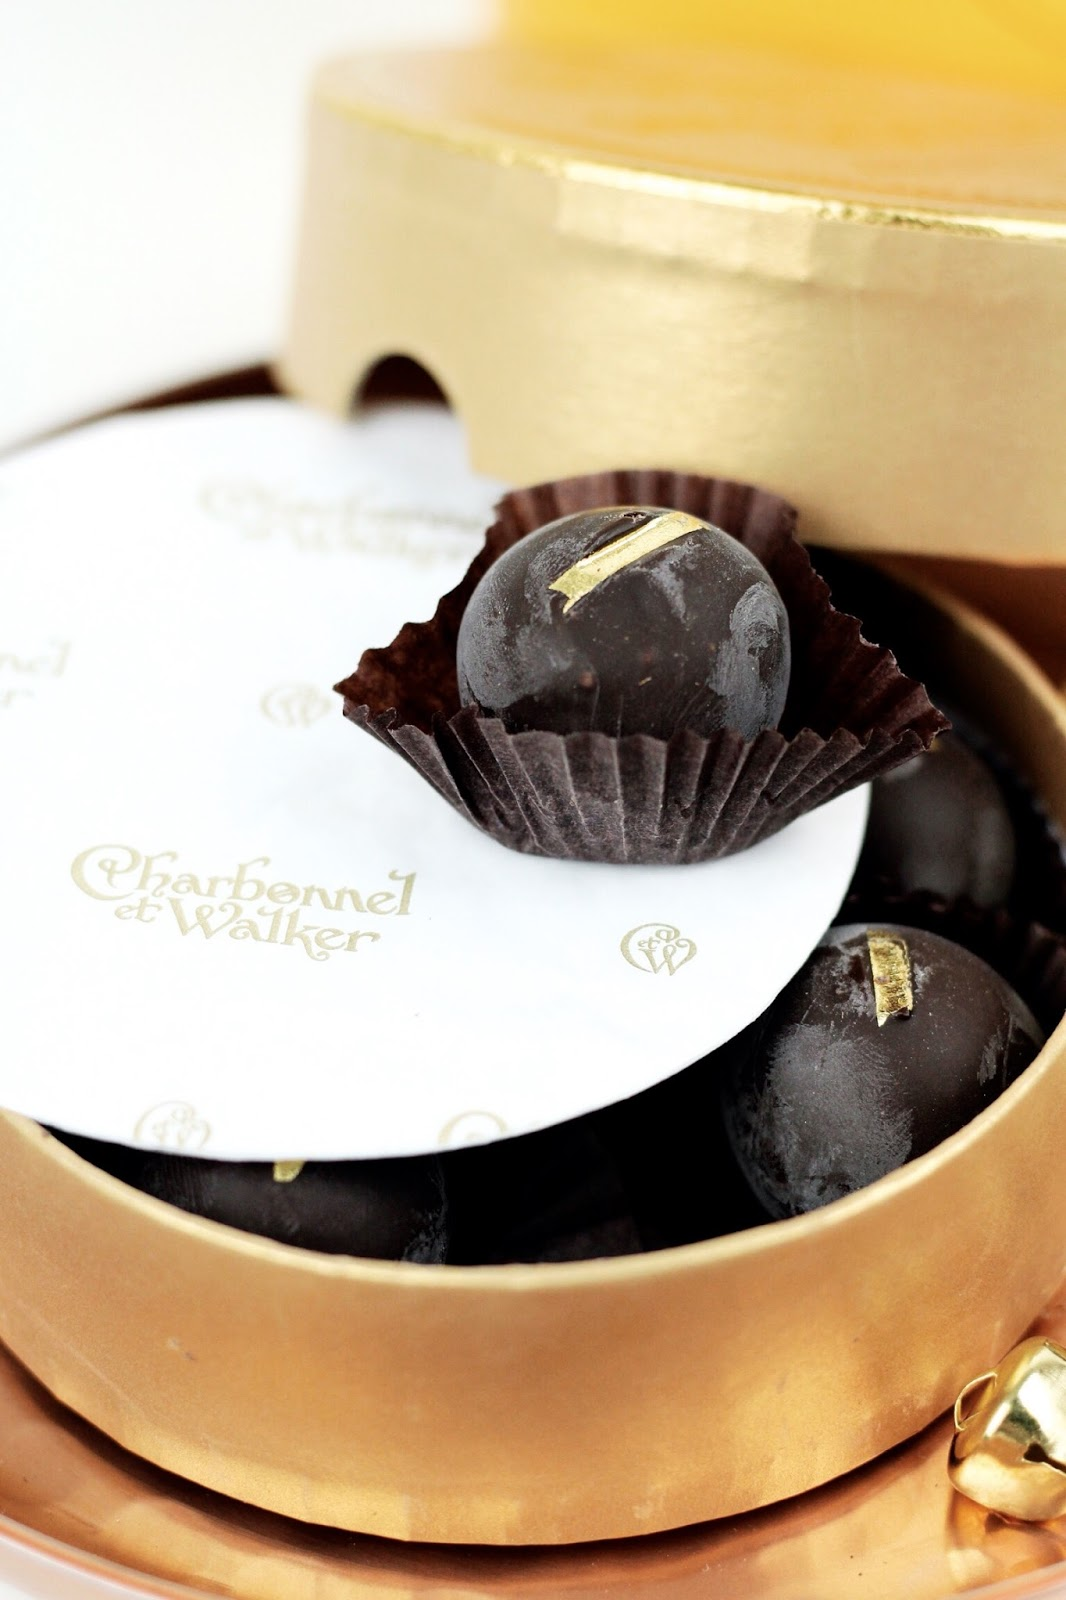 Dark chocolate gold leaf by Charbonnel et Walker